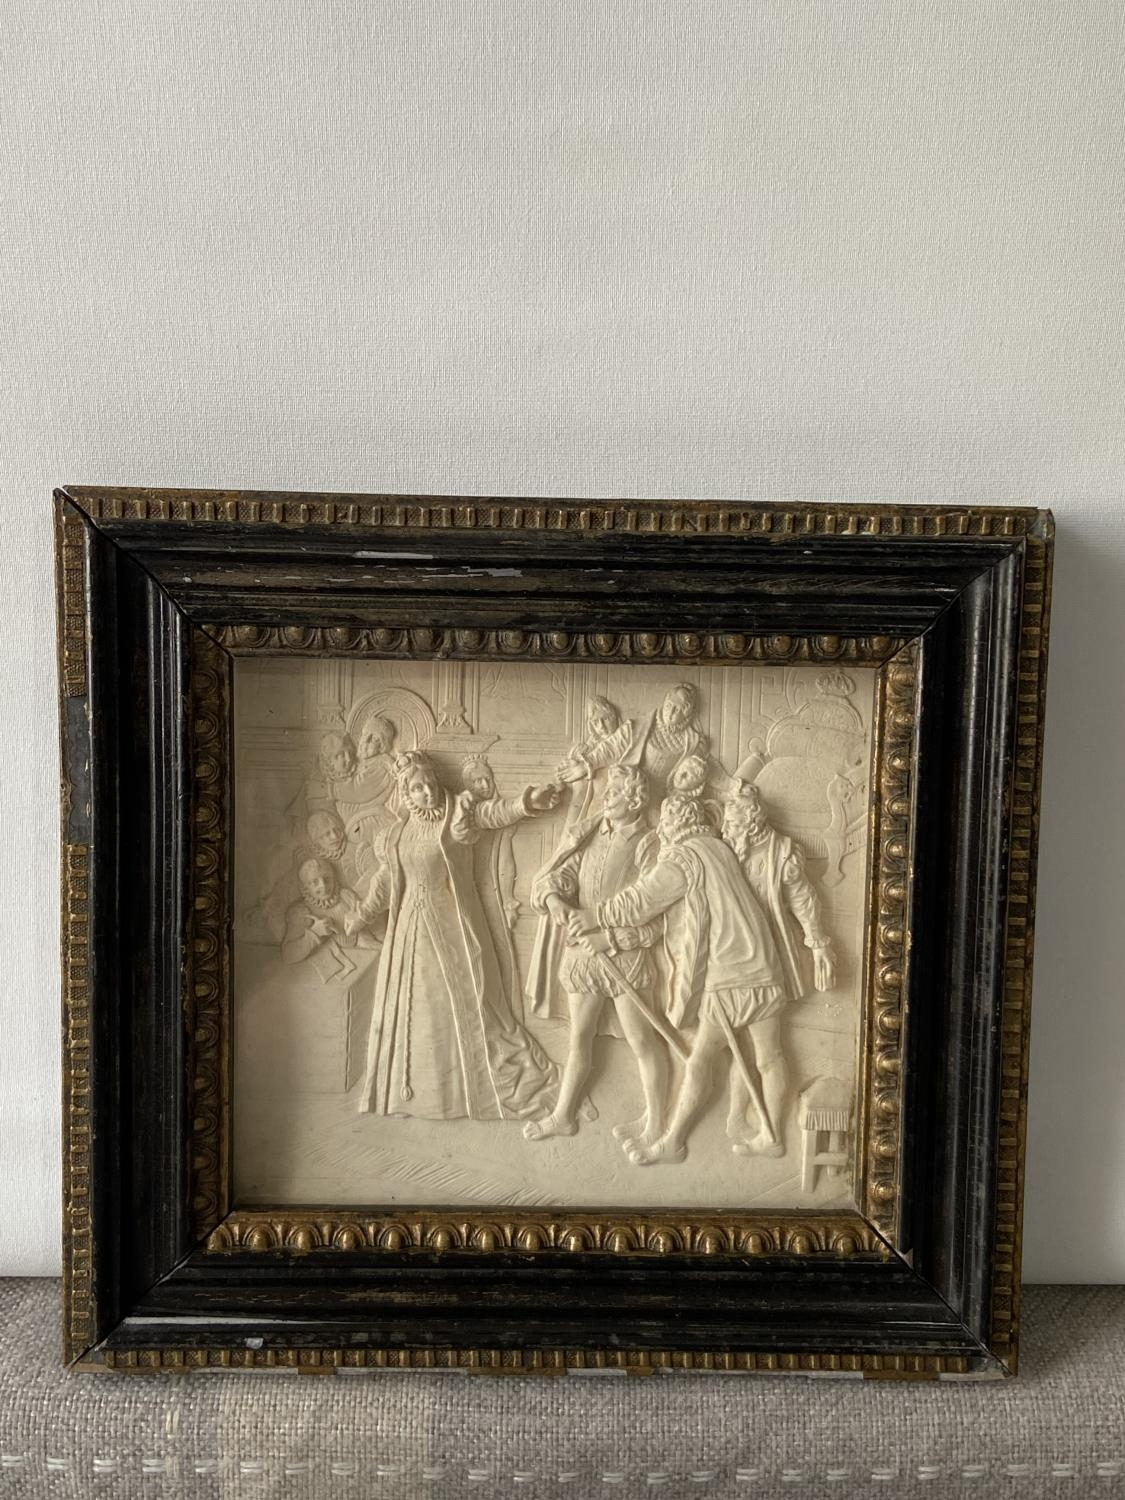 An 18th/ 19th century marble carved panel fitted within a gilt wooden frame. Depicting Queen